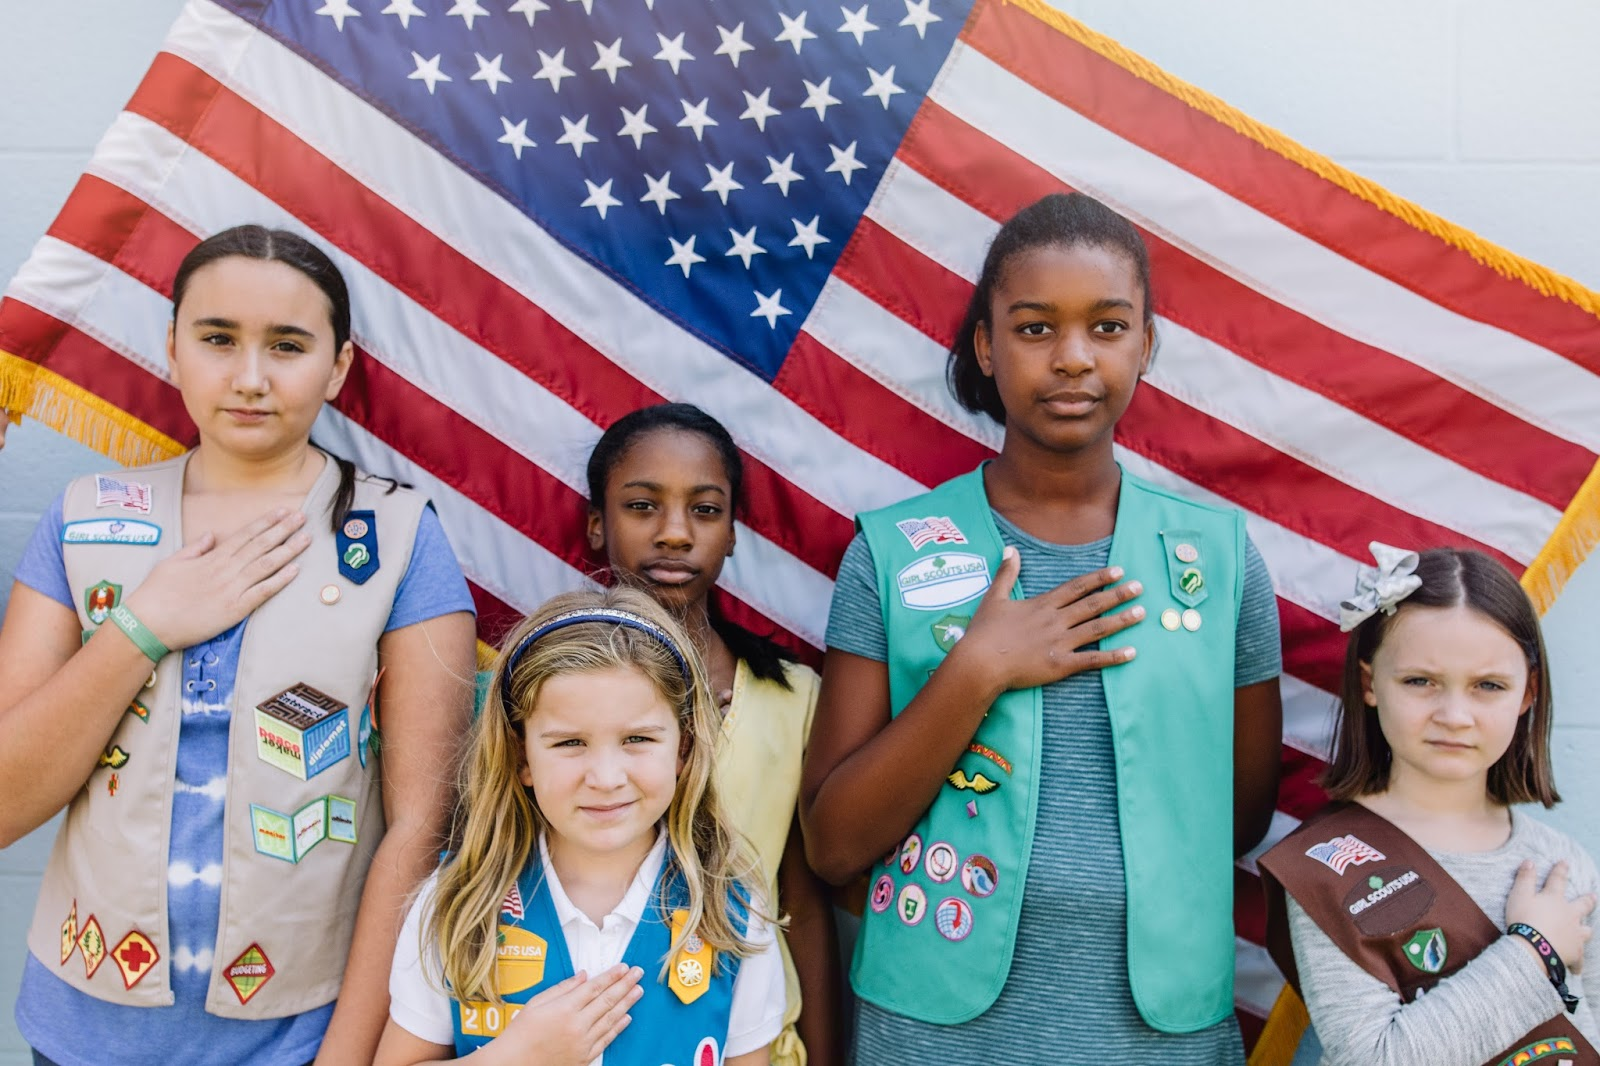 Think, Girl scout common wealth council of virginia has surprised